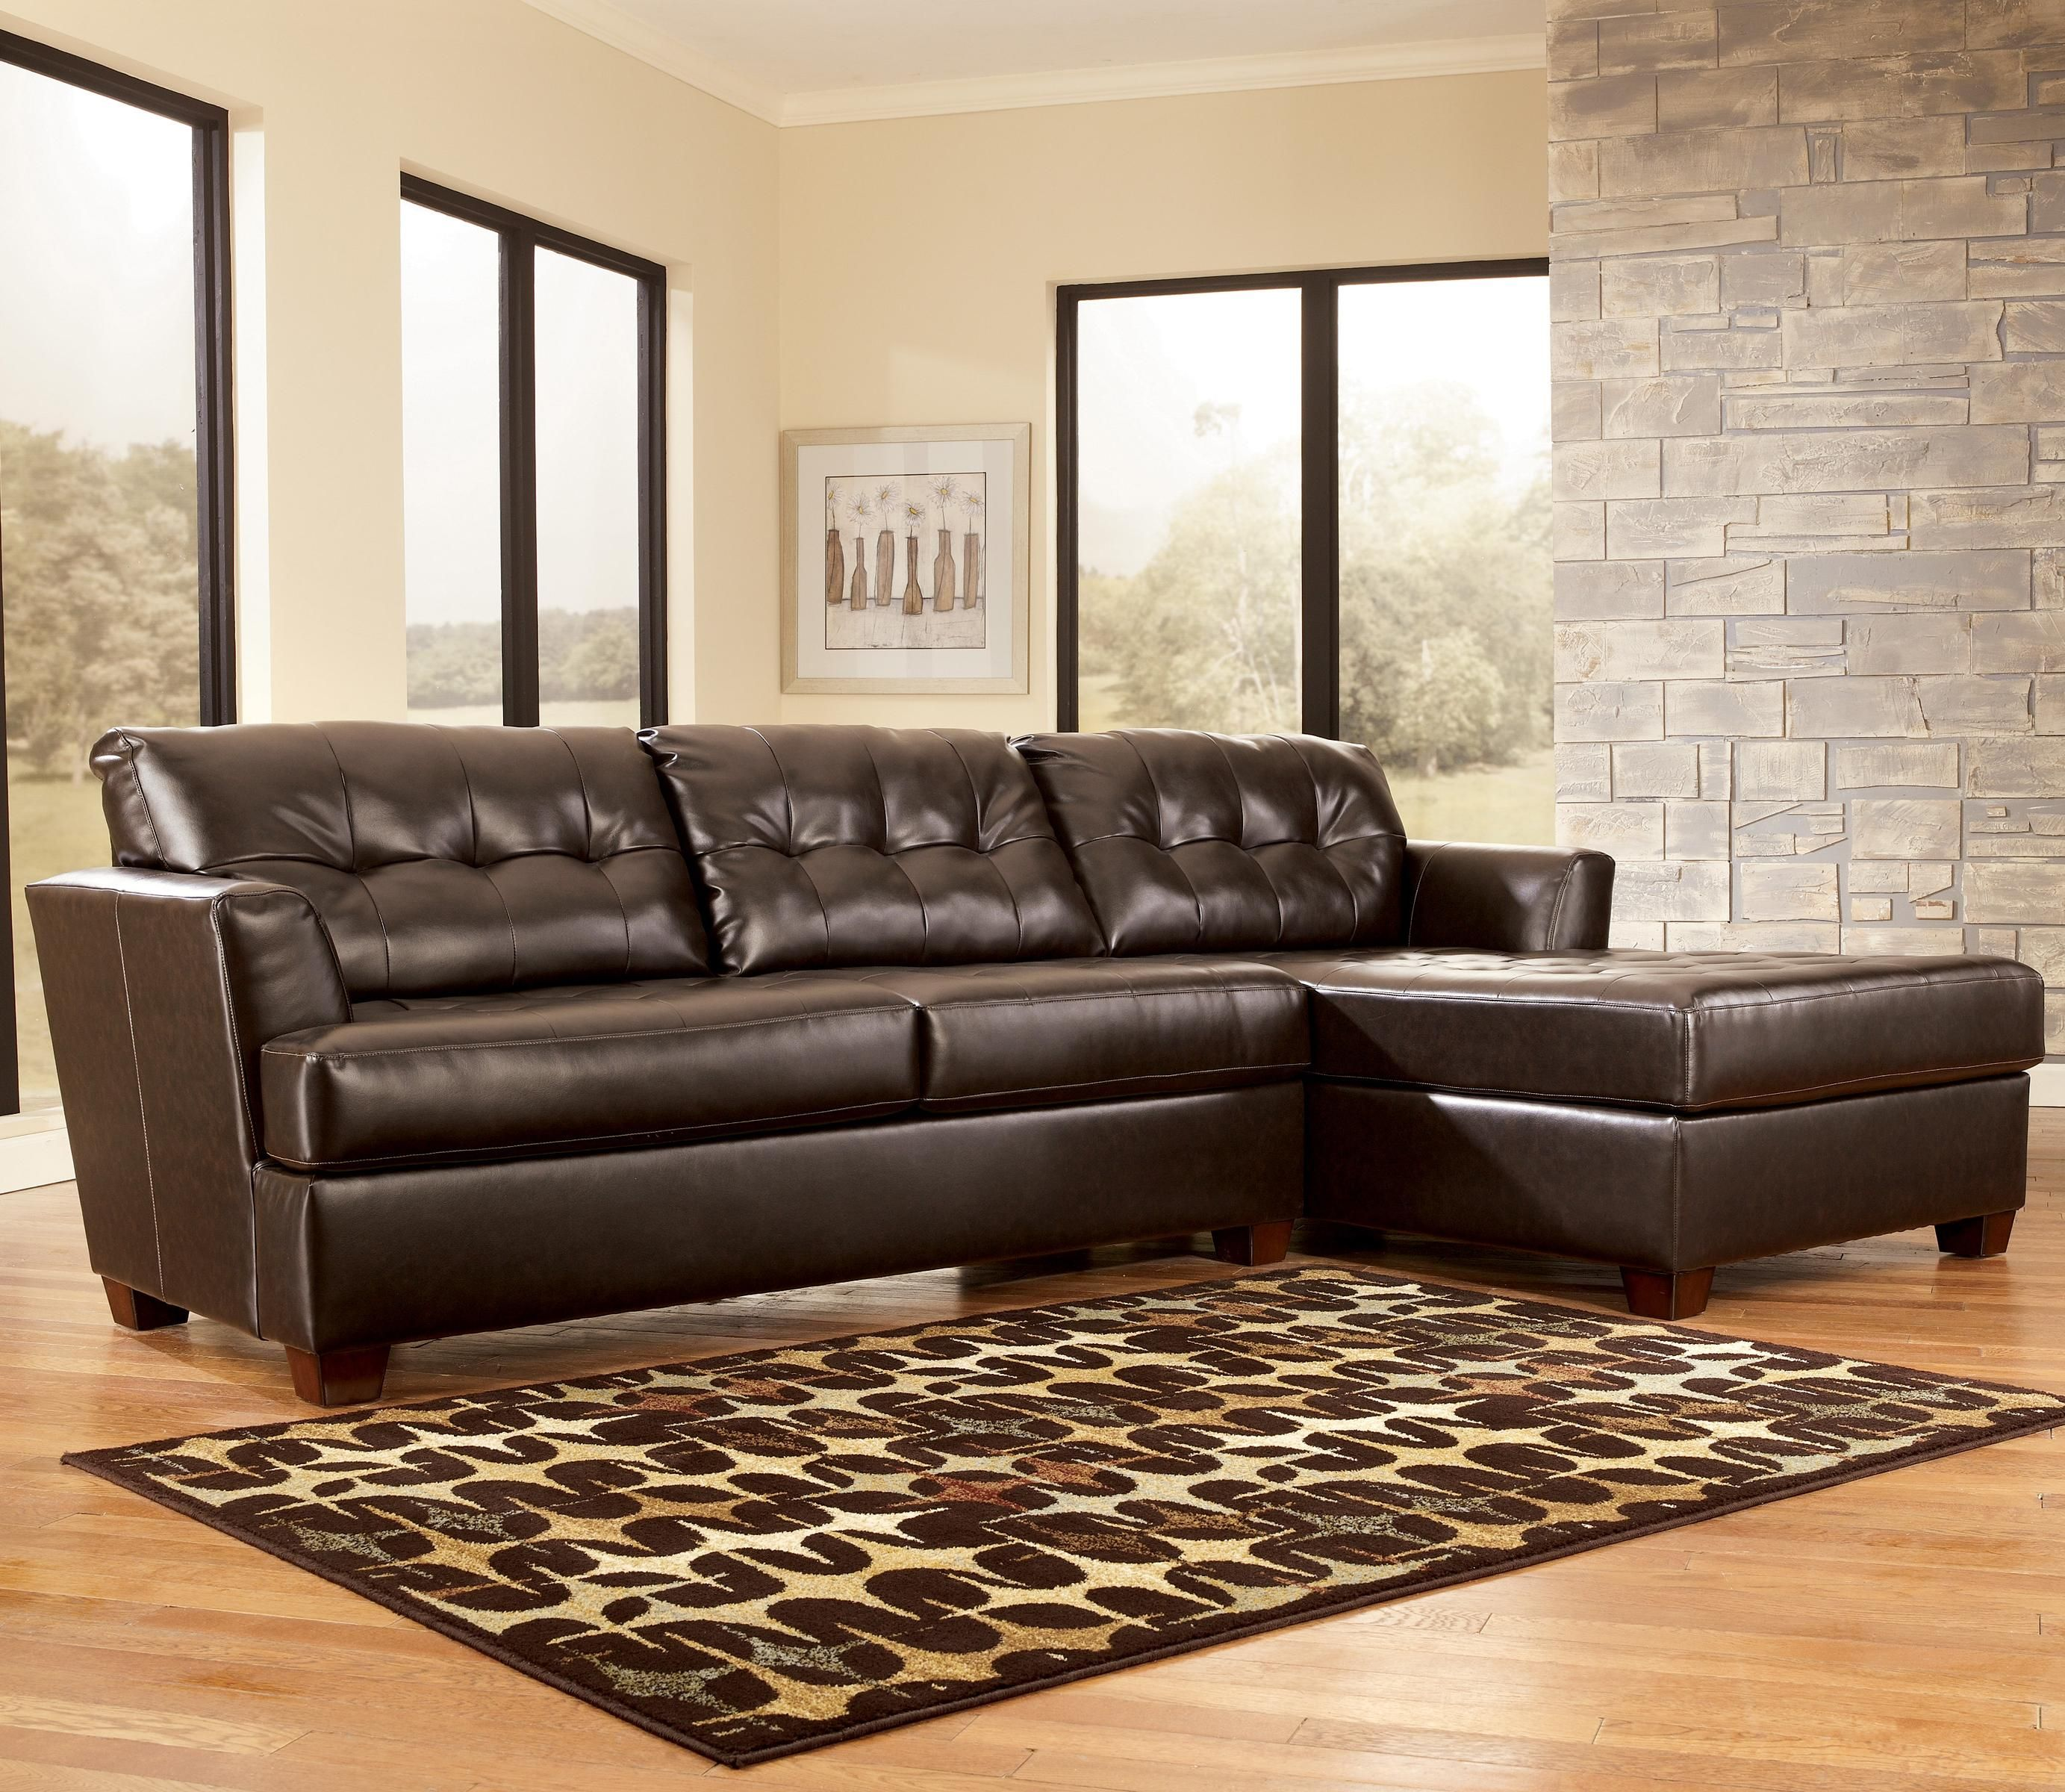 Dixon durablend chocolate sectional sofa by signature for Ashley durablend chaise